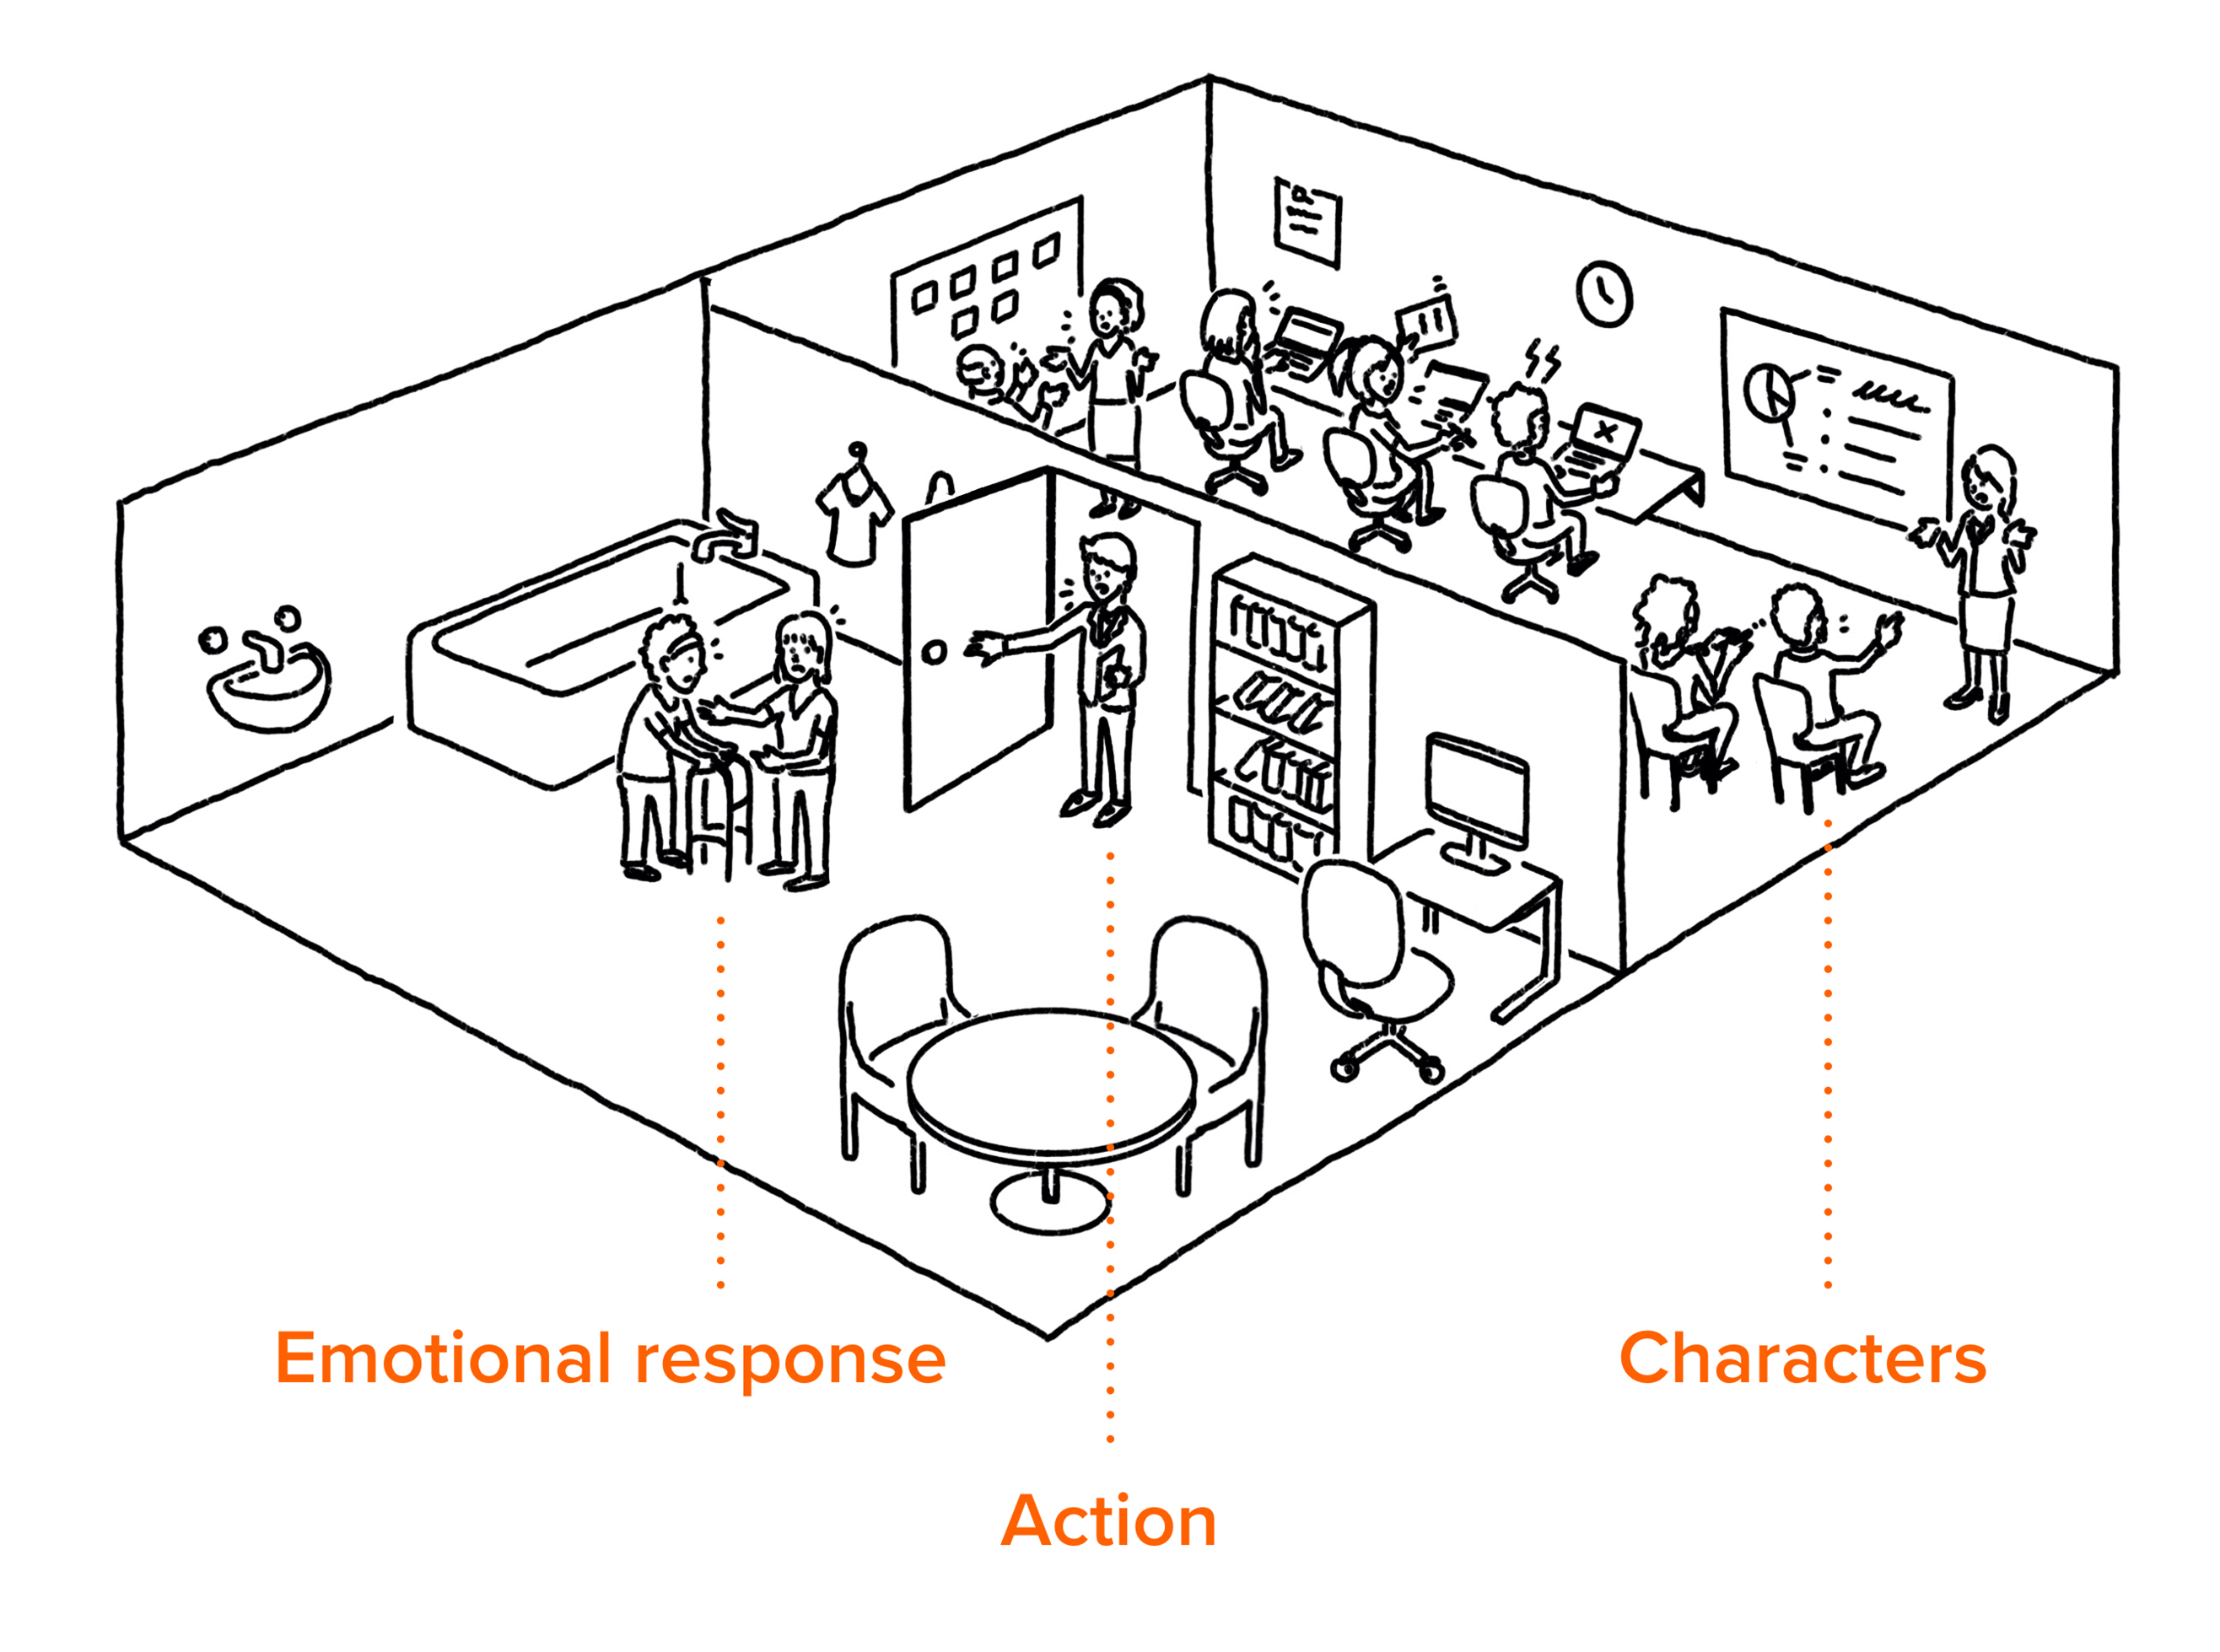 Similar to previous image but with annotations pointing out Emotional response, action and characters. Illustration is of a business with a front-room that serves a home care customer, and a back-room where the business operates.